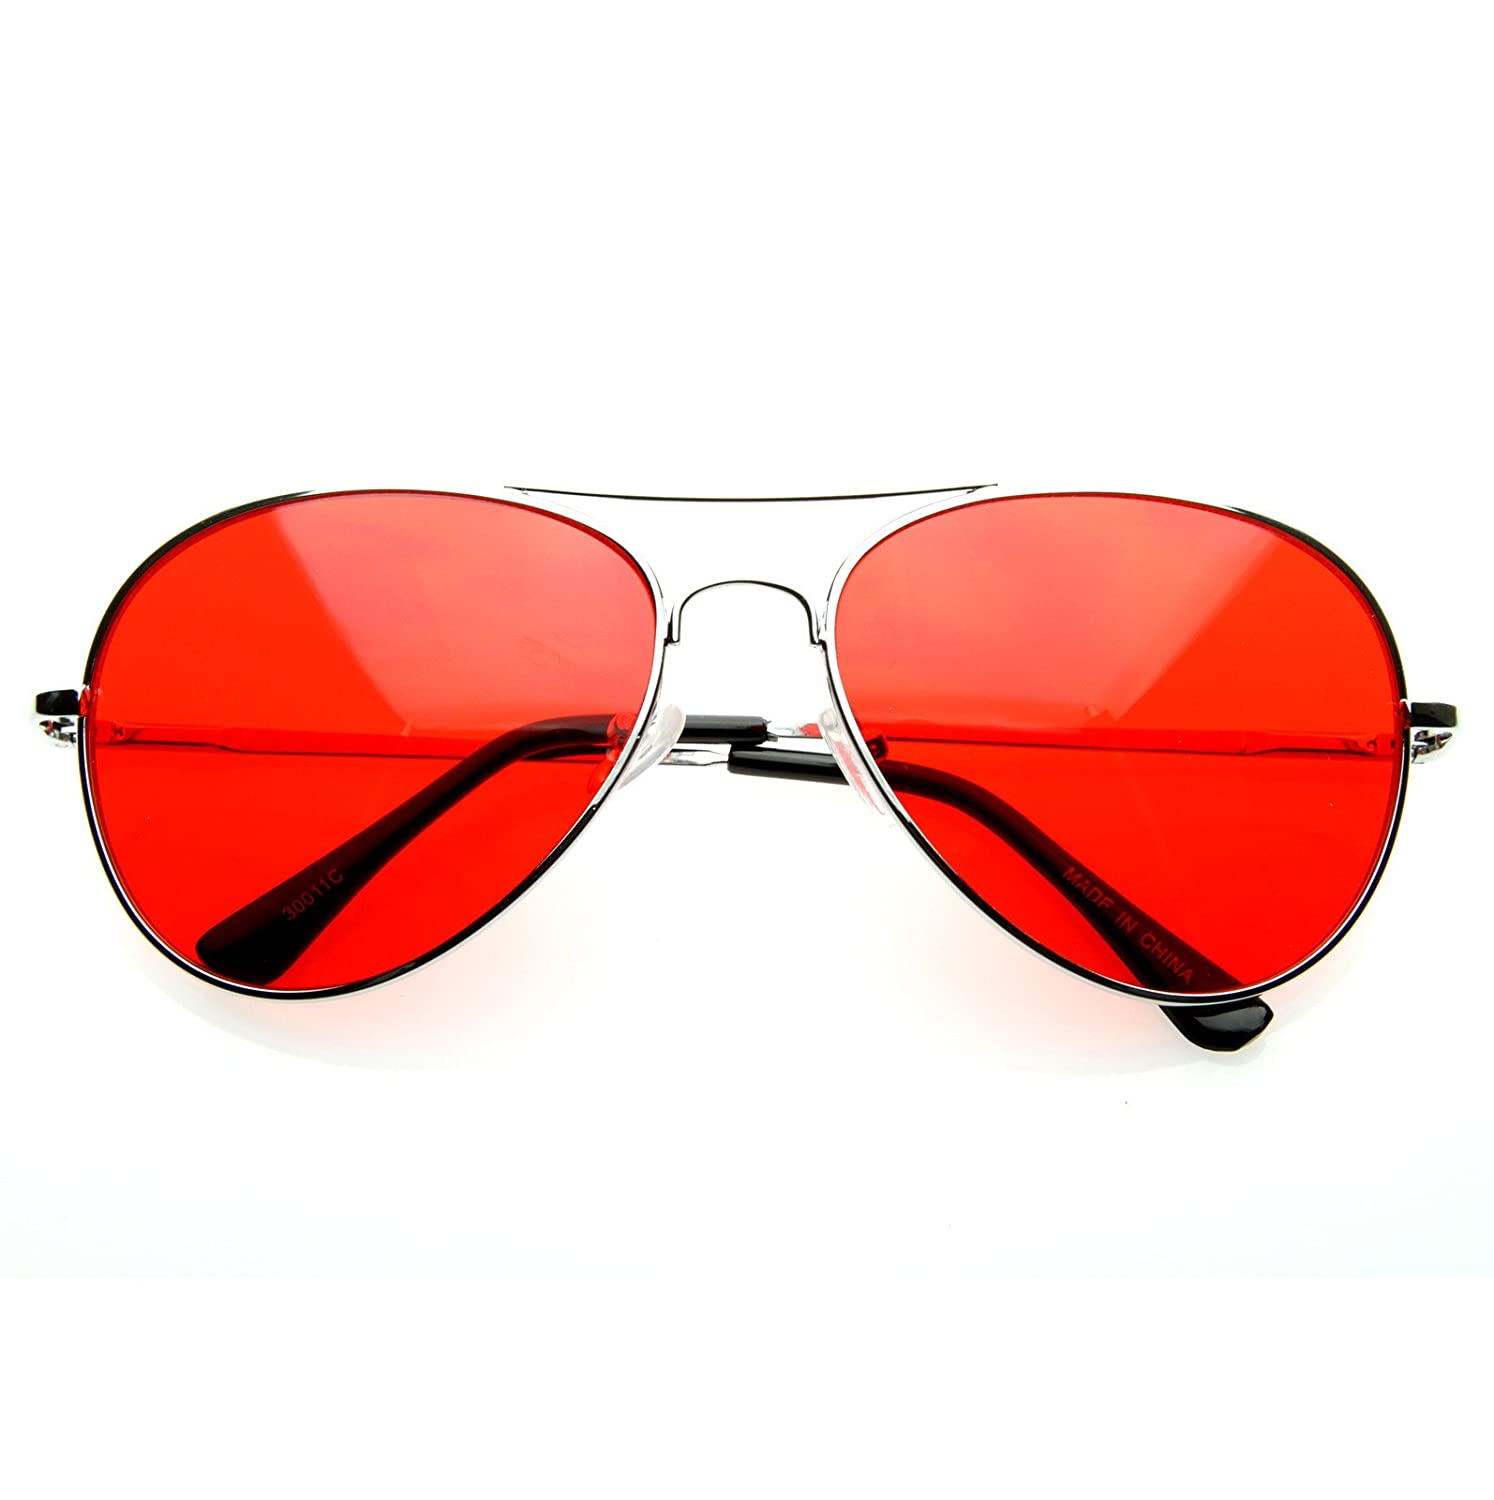 aviator sunglasses red